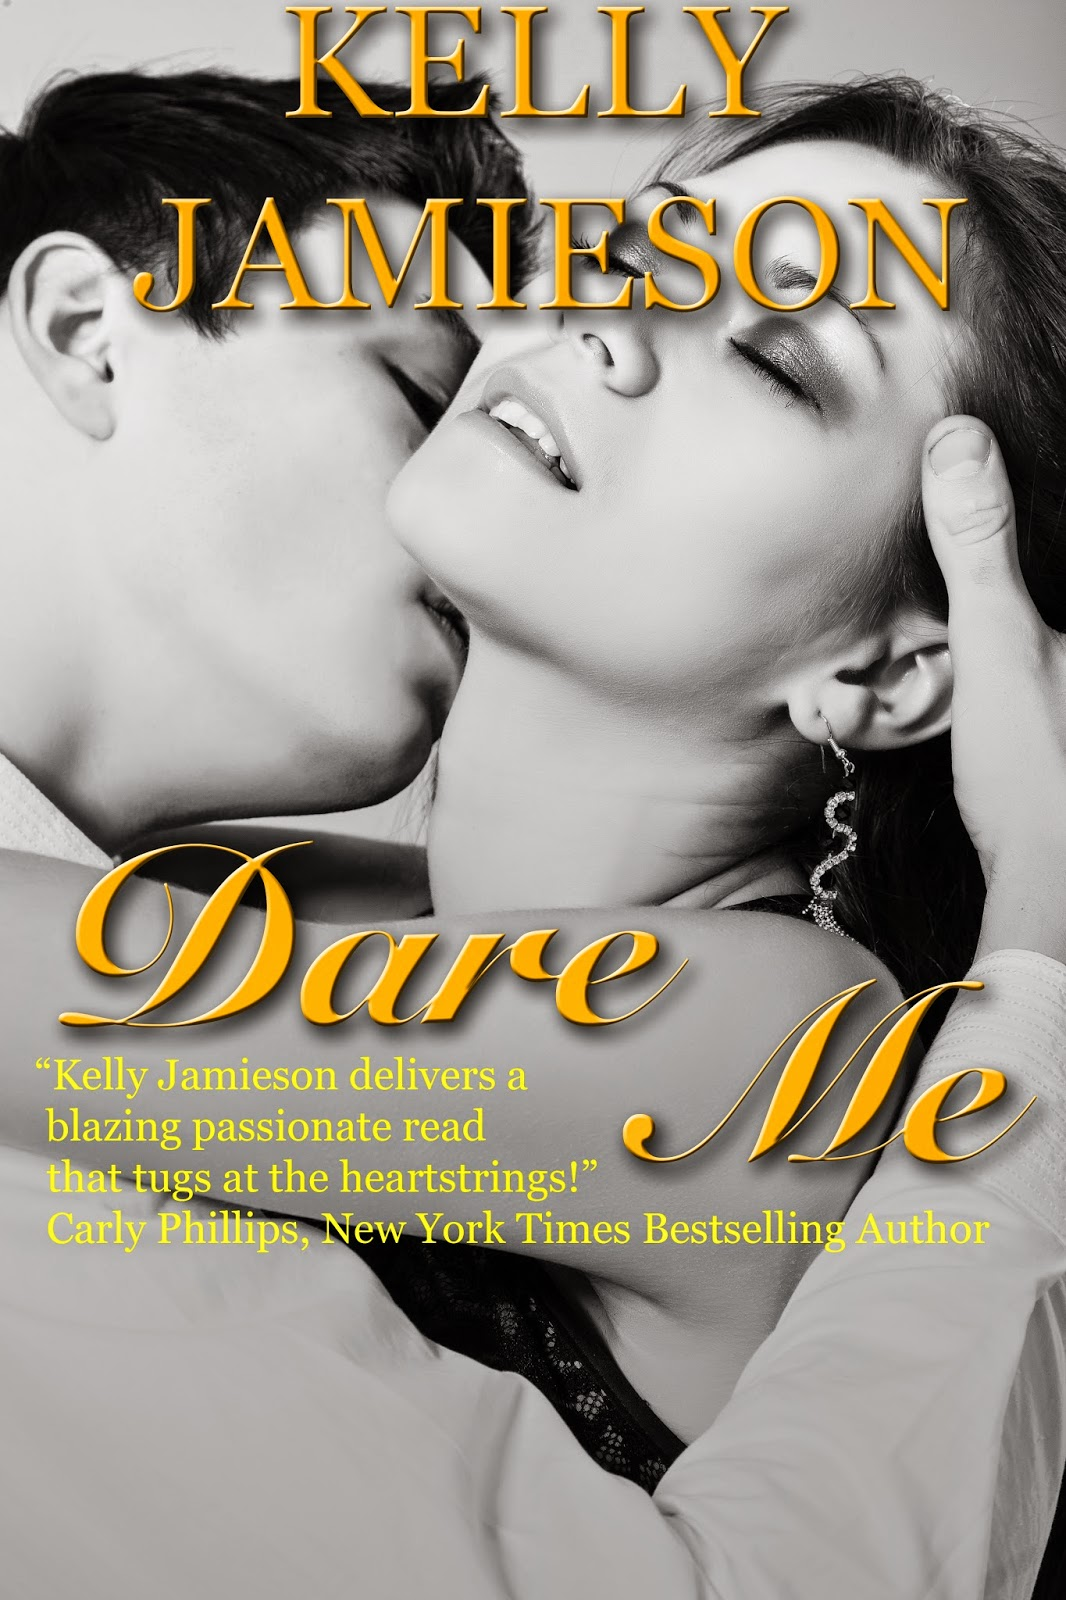 http://www.amazon.com/Dare-Love-Kindle-Worlds-Novella-ebook/dp/B00SGGEHPY/ref=sr_1_1?s=digital-text&ie=UTF8&qid=1421716930&sr=1-1